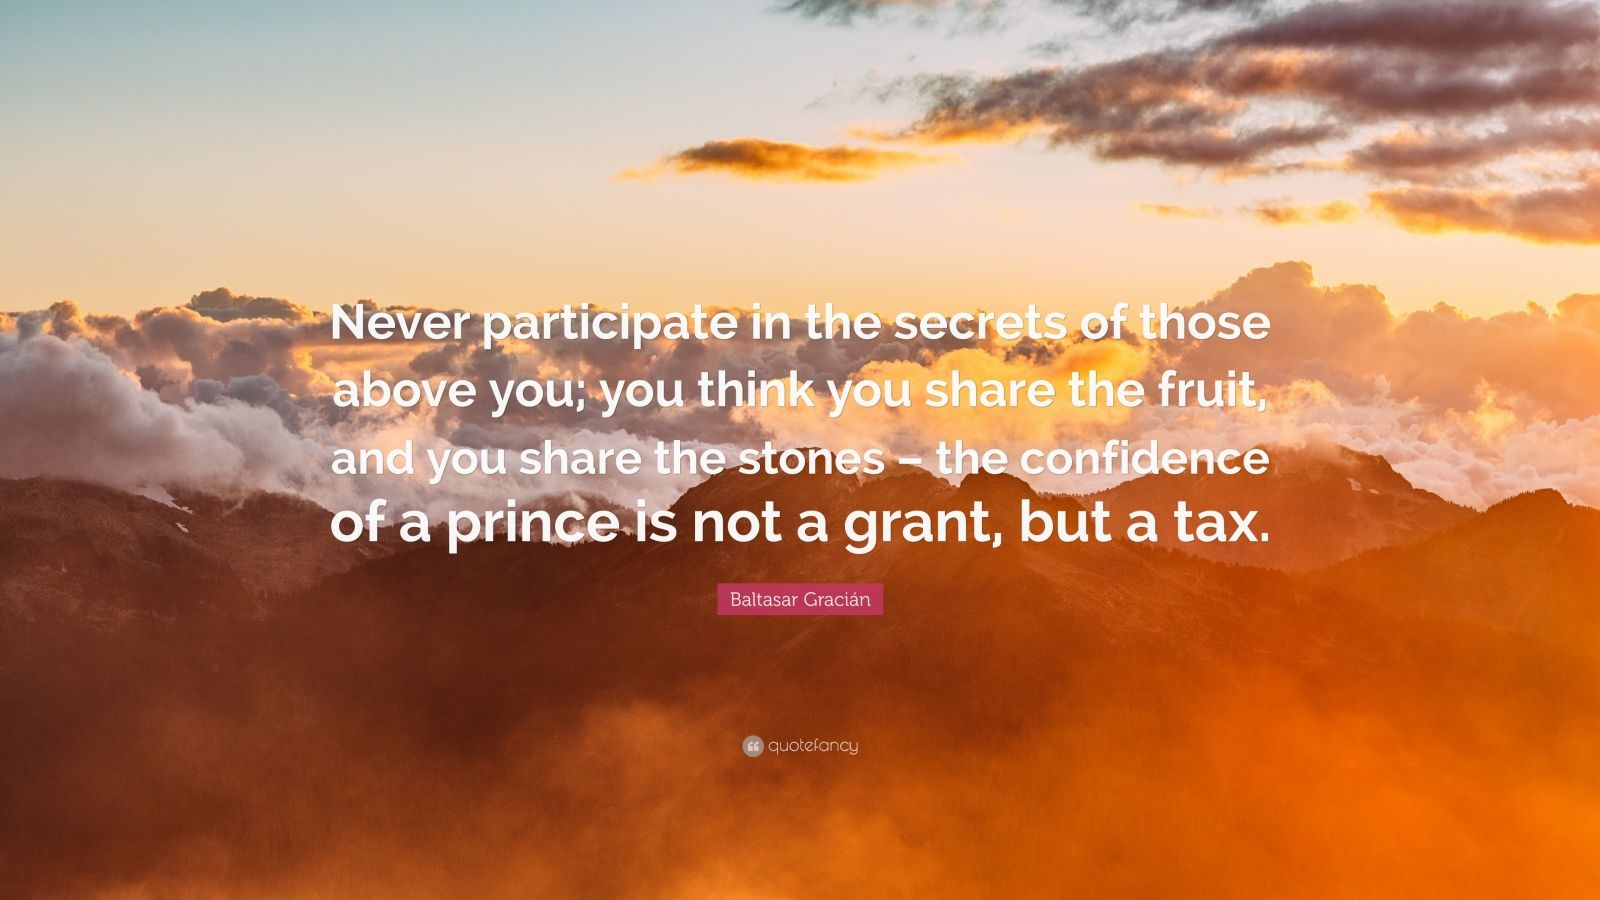 """Baltasar Gracián Quote: """"Never participate in the secrets of those above you; you think you share the fruit, and you share the stones – the confidence of a prince is not a grant, but a tax."""""""